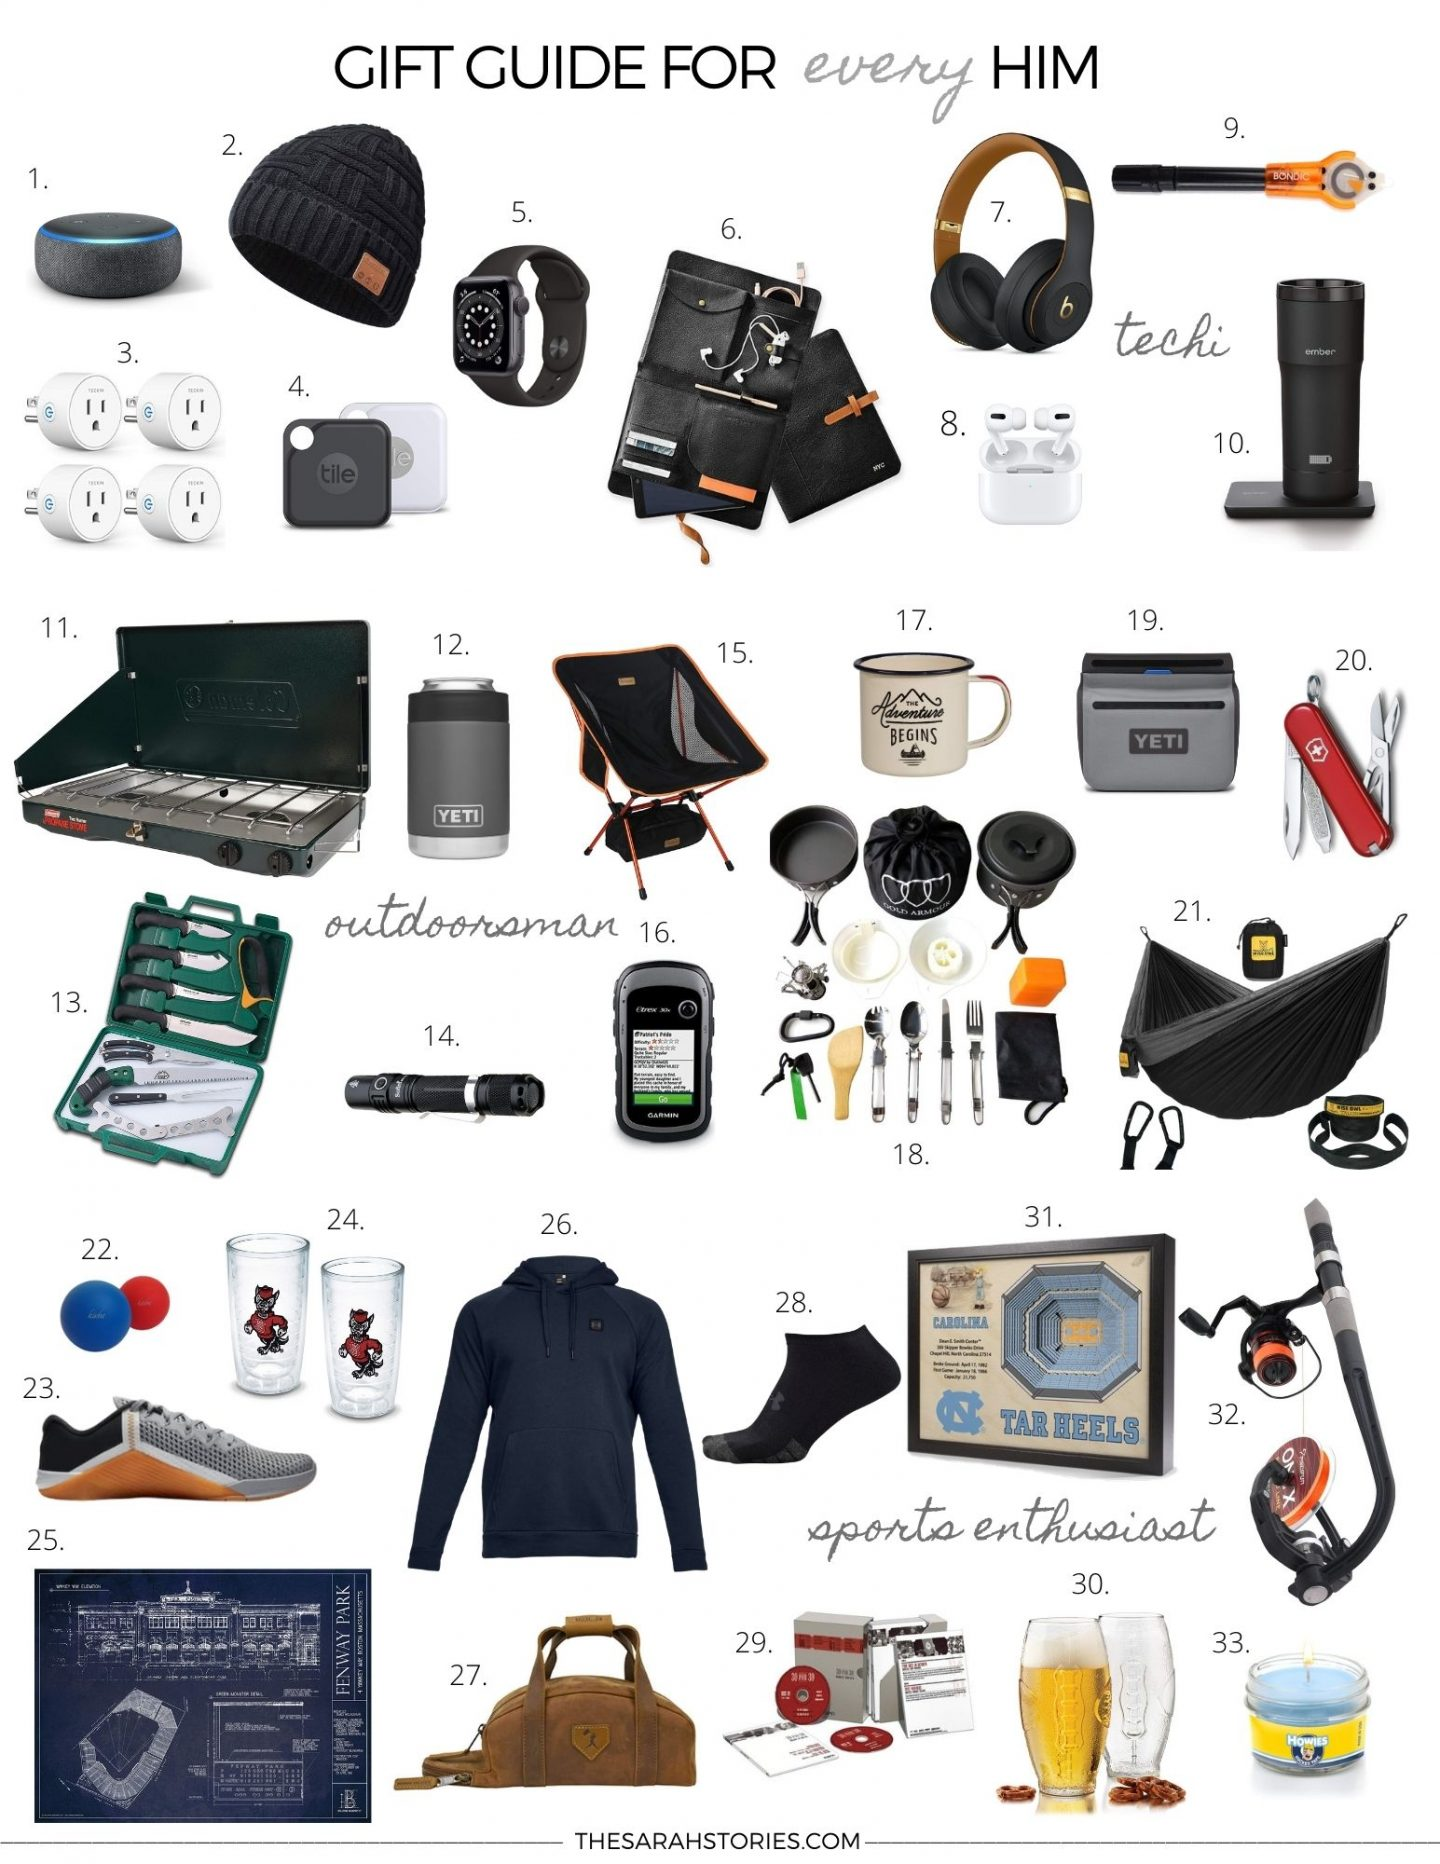 Holiday Gift Guide for every HIM